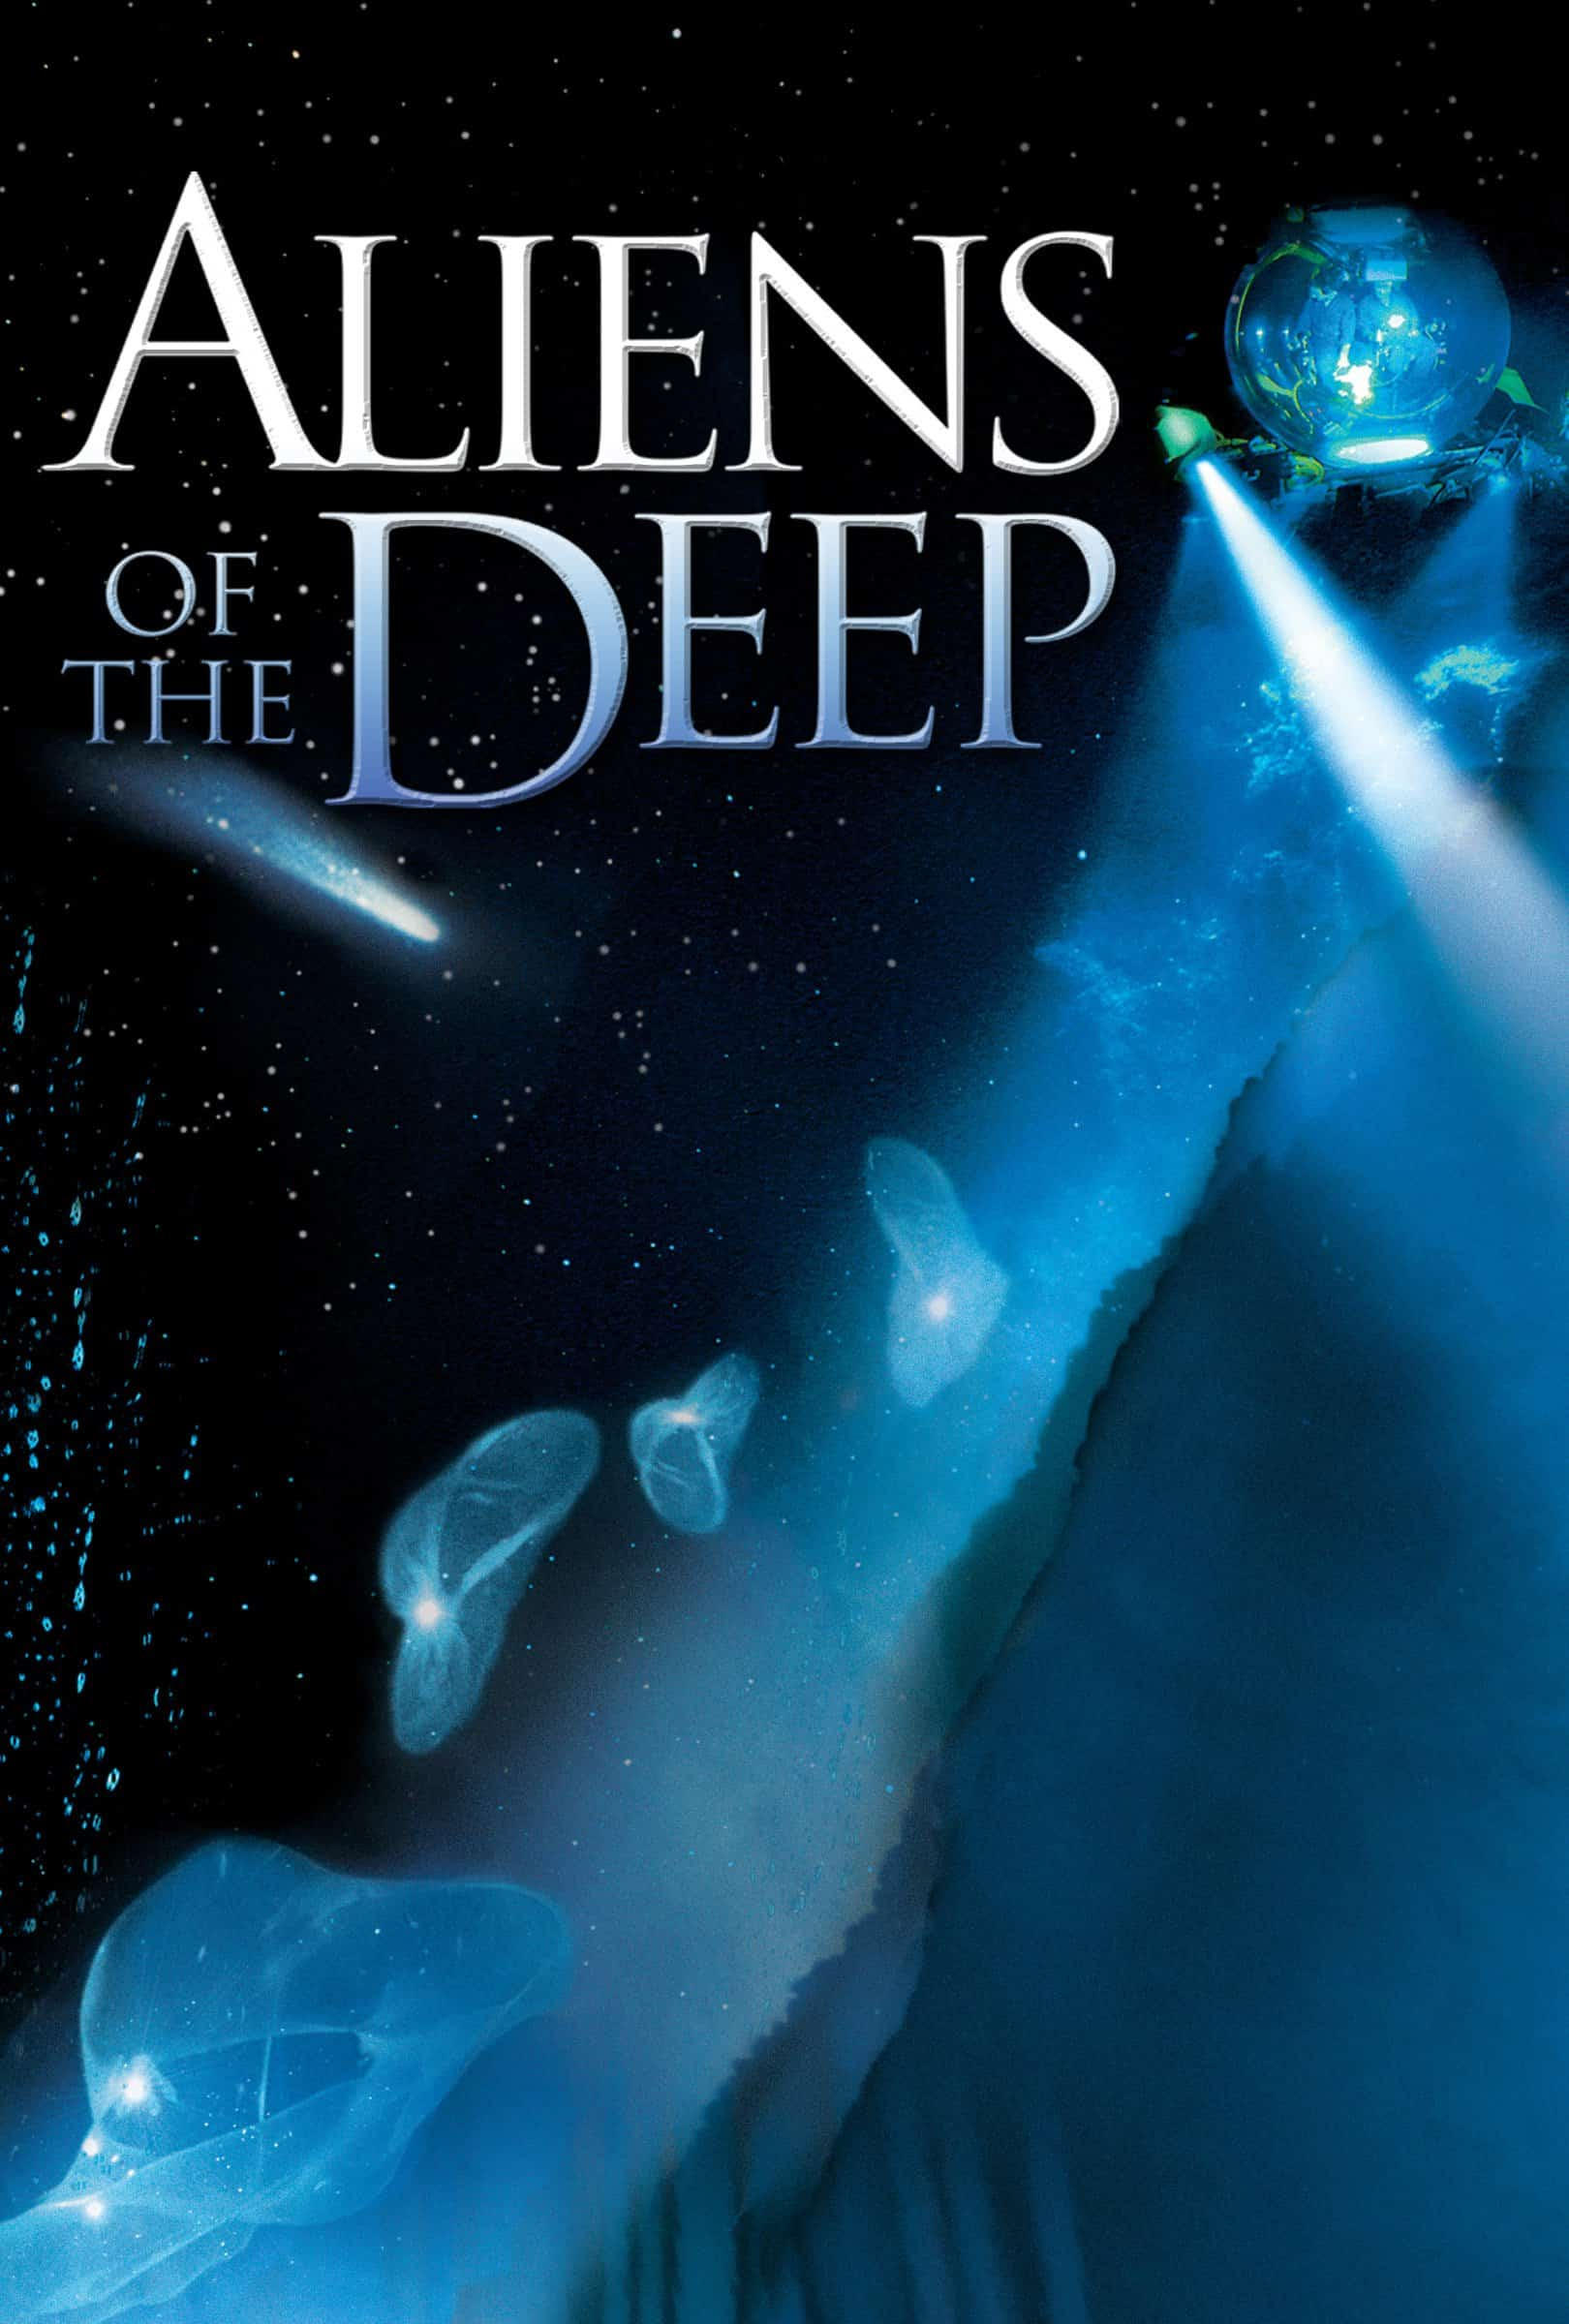 Aliens of the Deep, 2005